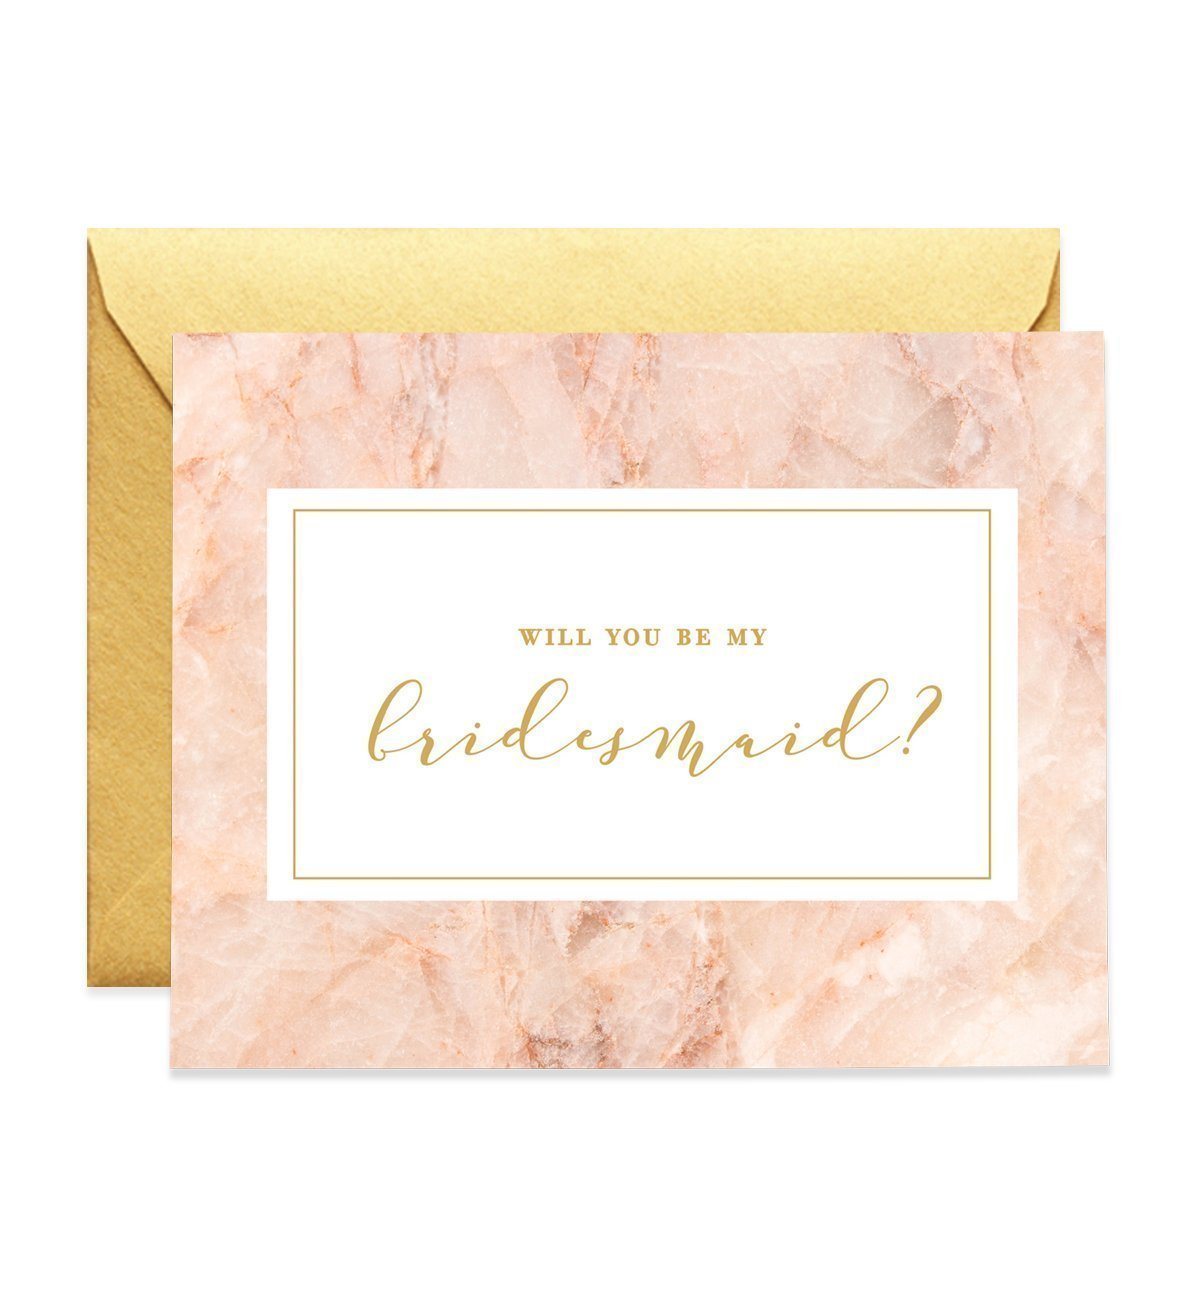 Will You Be My Bridesmaid Proposal Cards (Set of 5) Pink Gold Engaged Wedding Bridal Party Brides maids Greeting Cards Gold Shimmer Luxe Metallic Envelope Five Pack CW0013-1